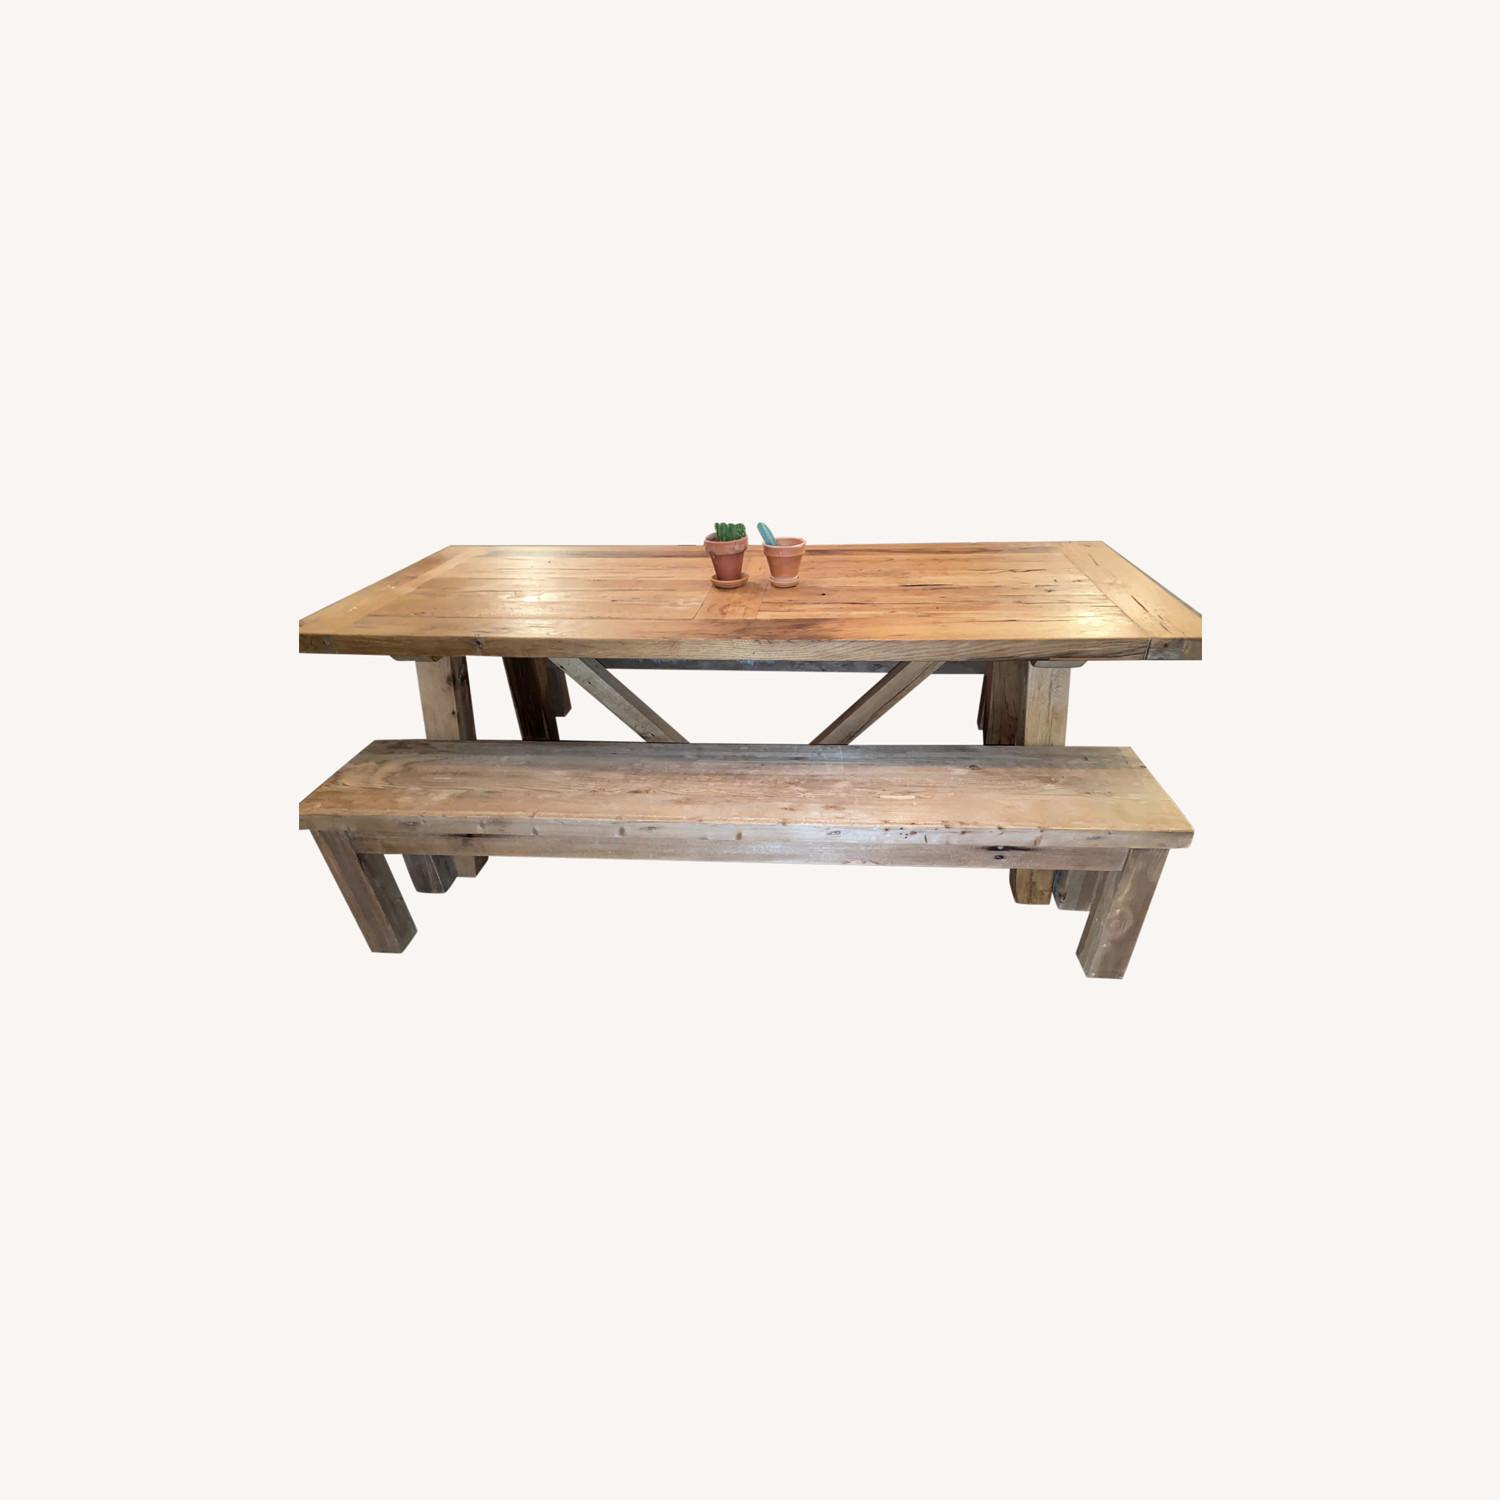 Restoration Hardware Russian Oak Table and Benches - image-0